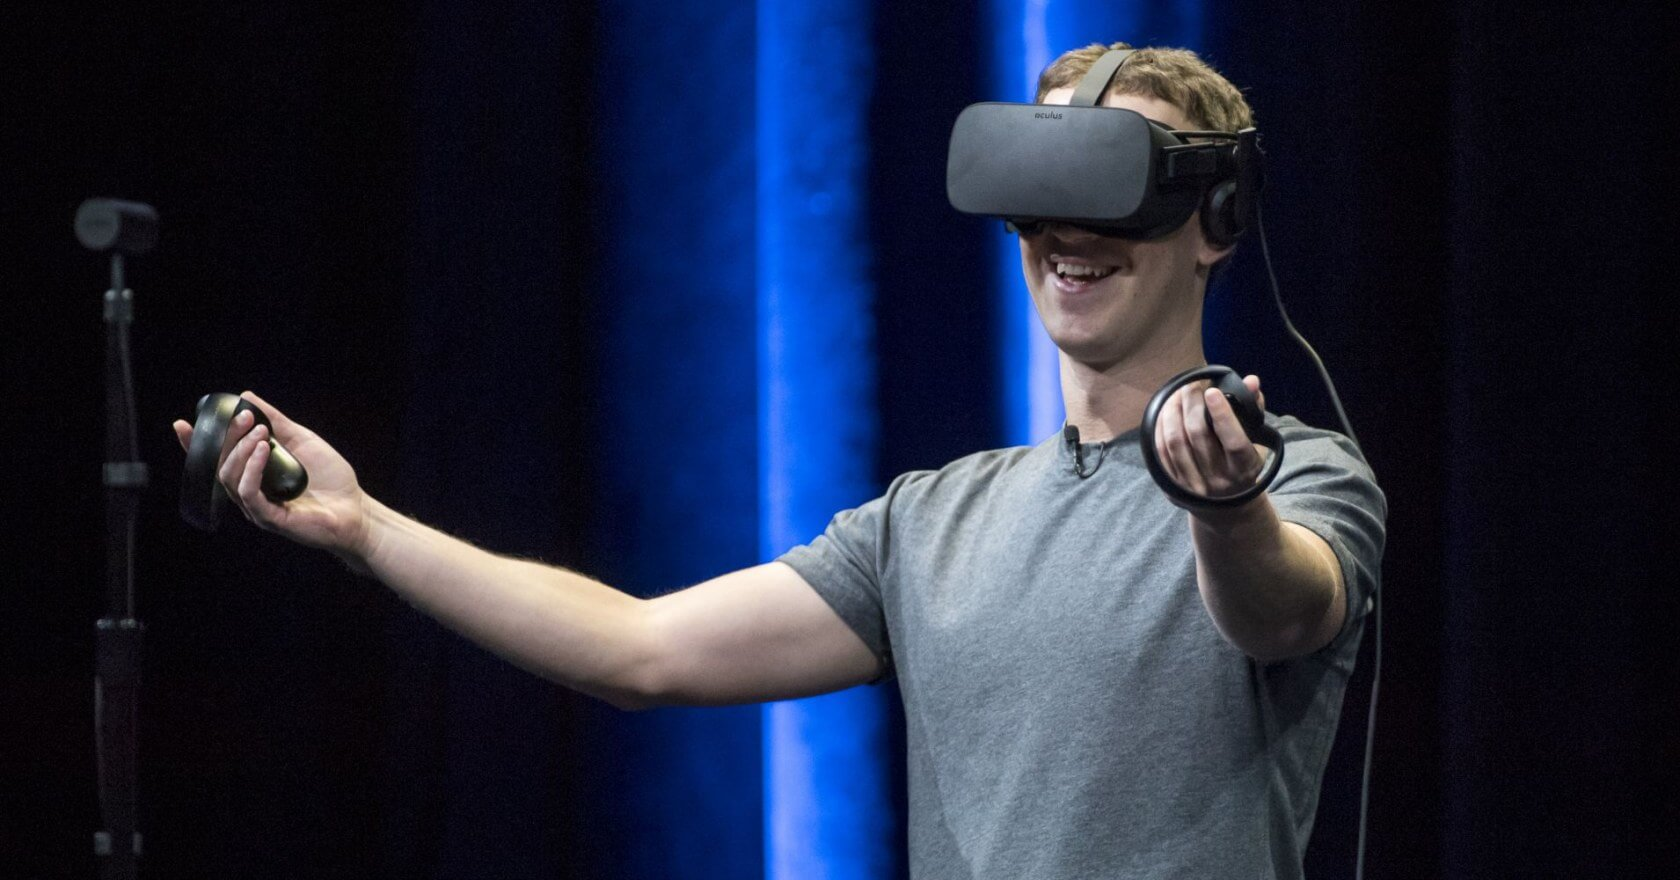 Rift Reprieve: Judge Cuts $250 Million From Facebook's Debt to Zenimax